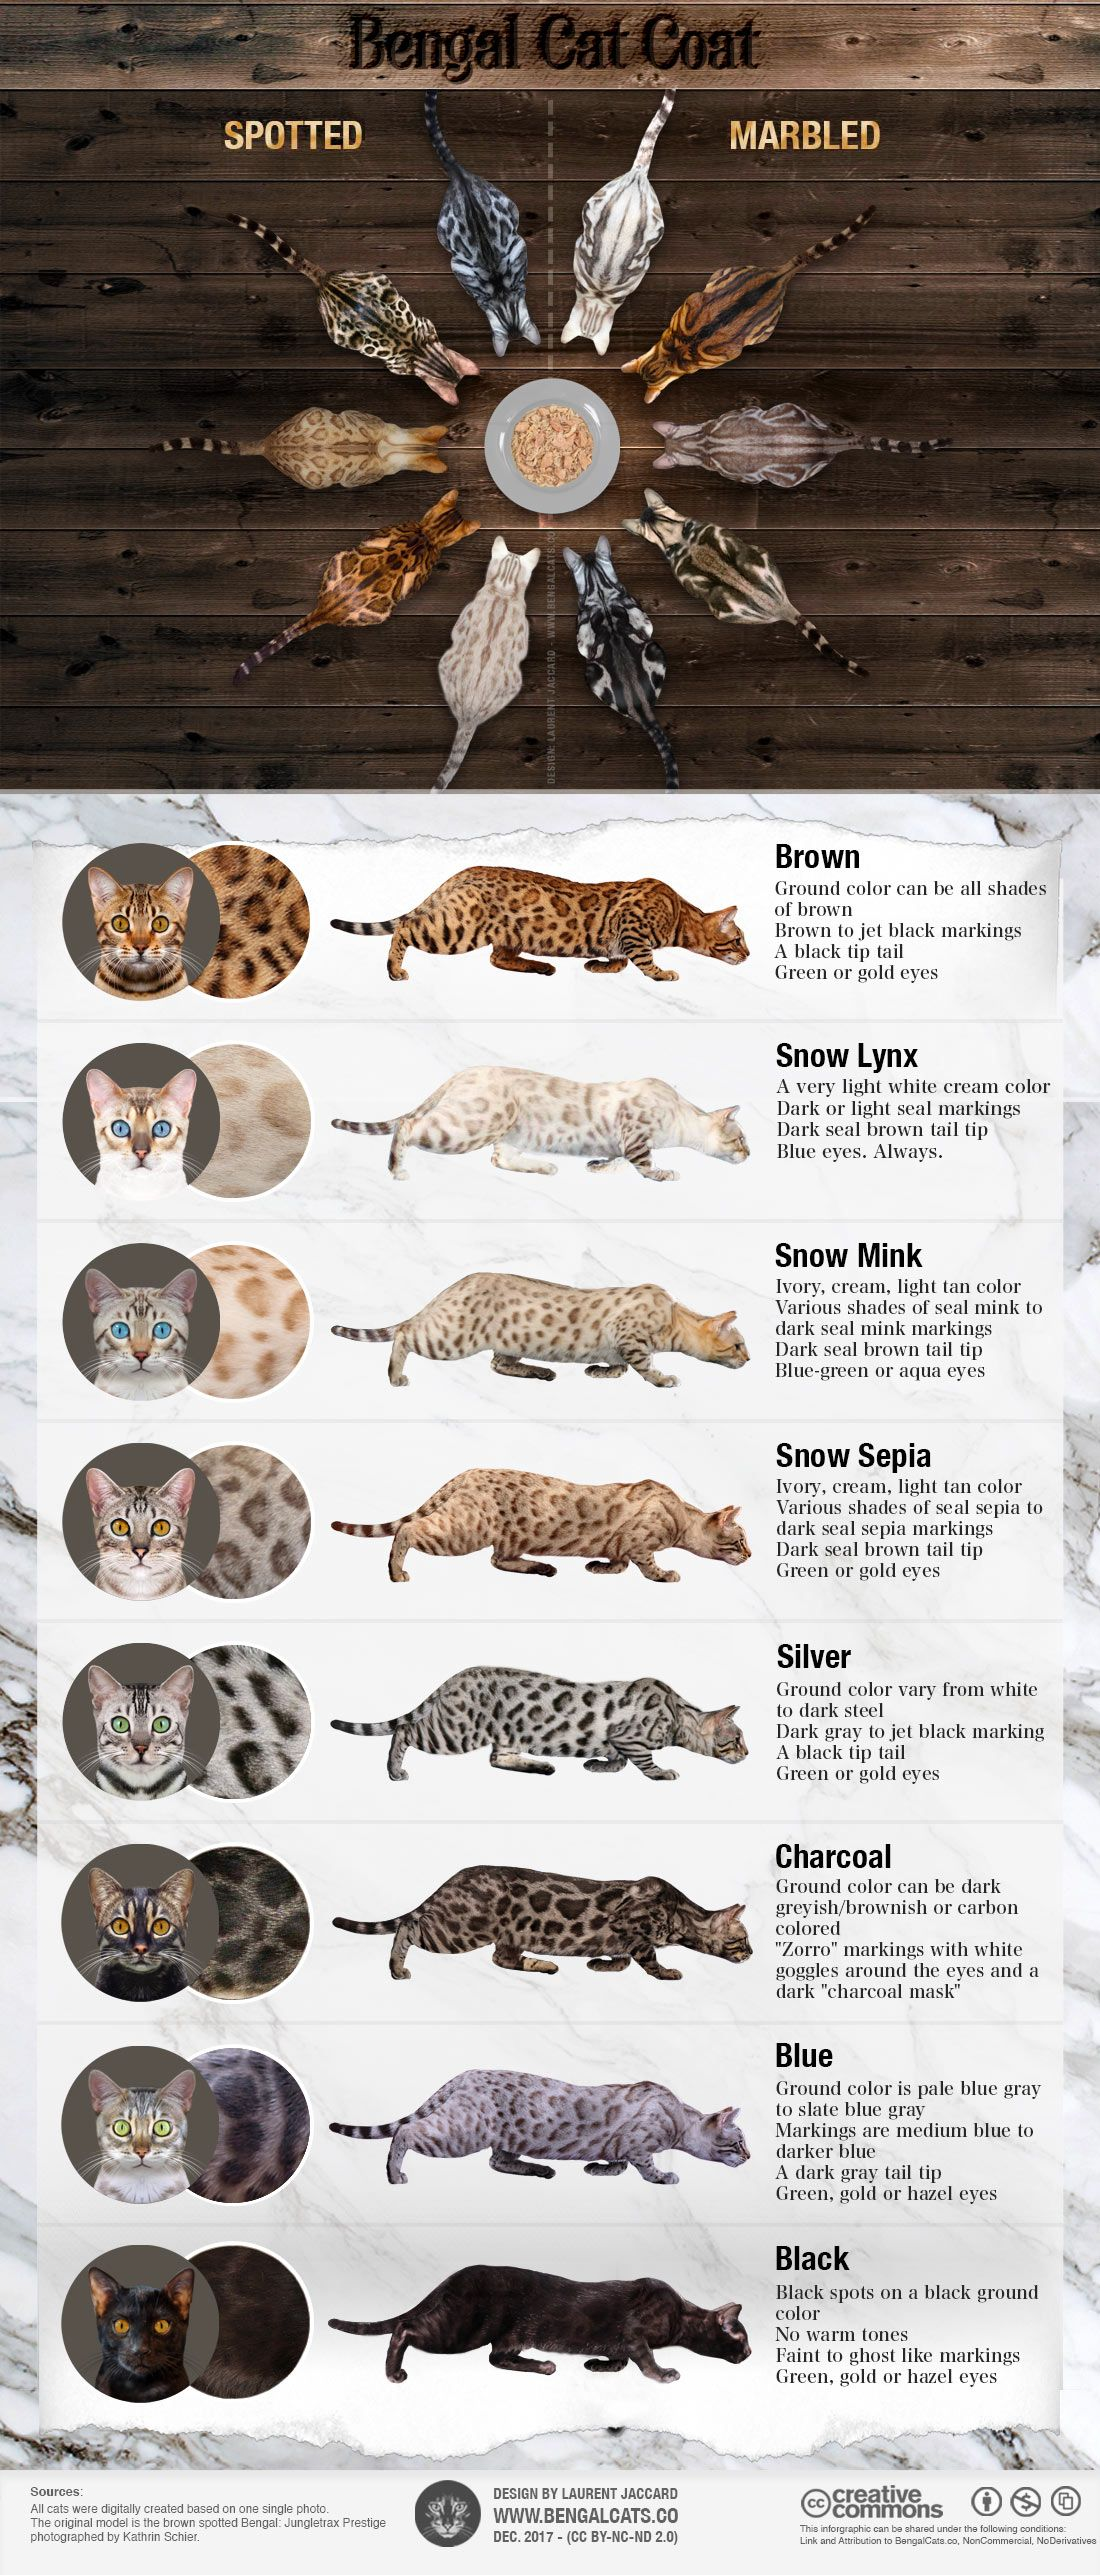 SILVER AND GOLD SMOKE, SHADED AND TIPPED CATS Cat facts